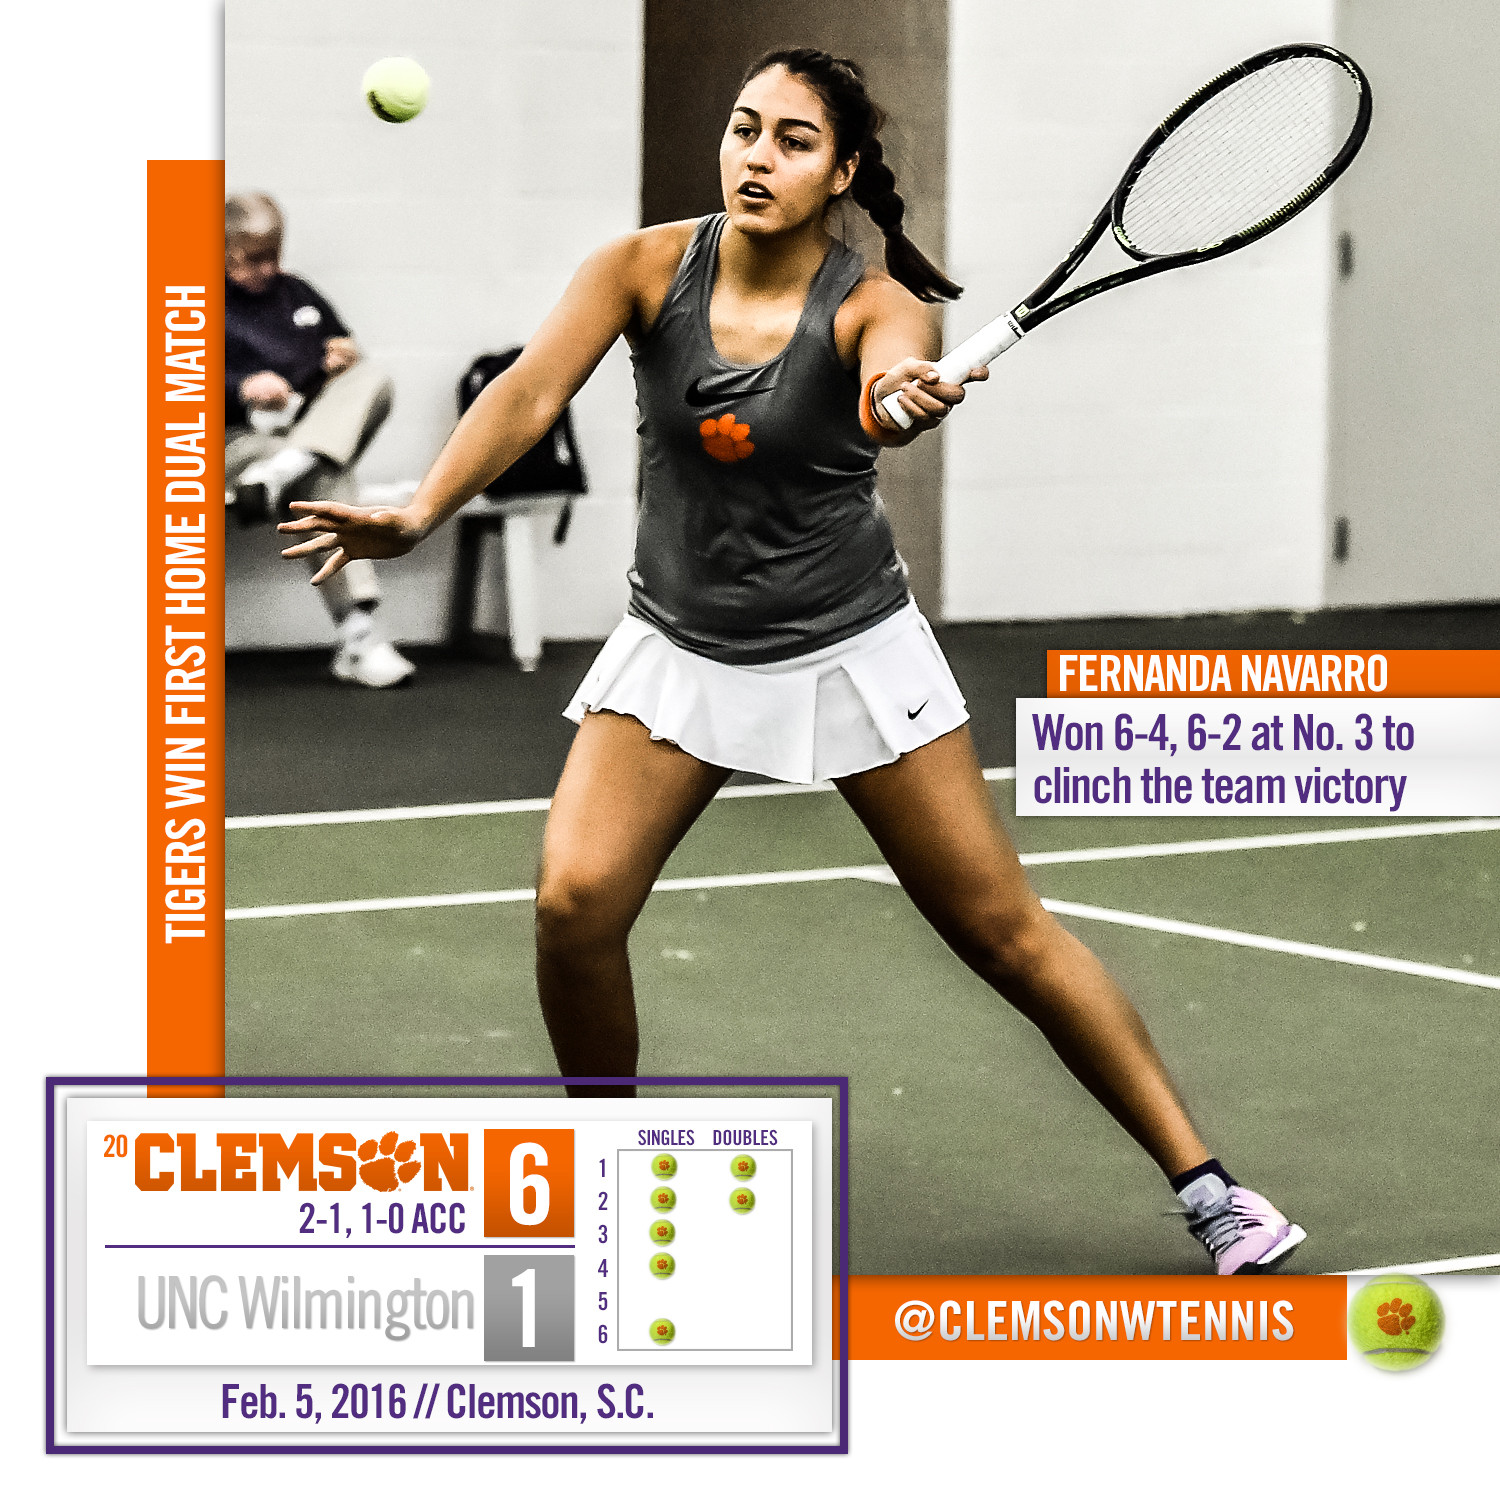 Tigers Down UNC Wilmington in First Home Dual Match